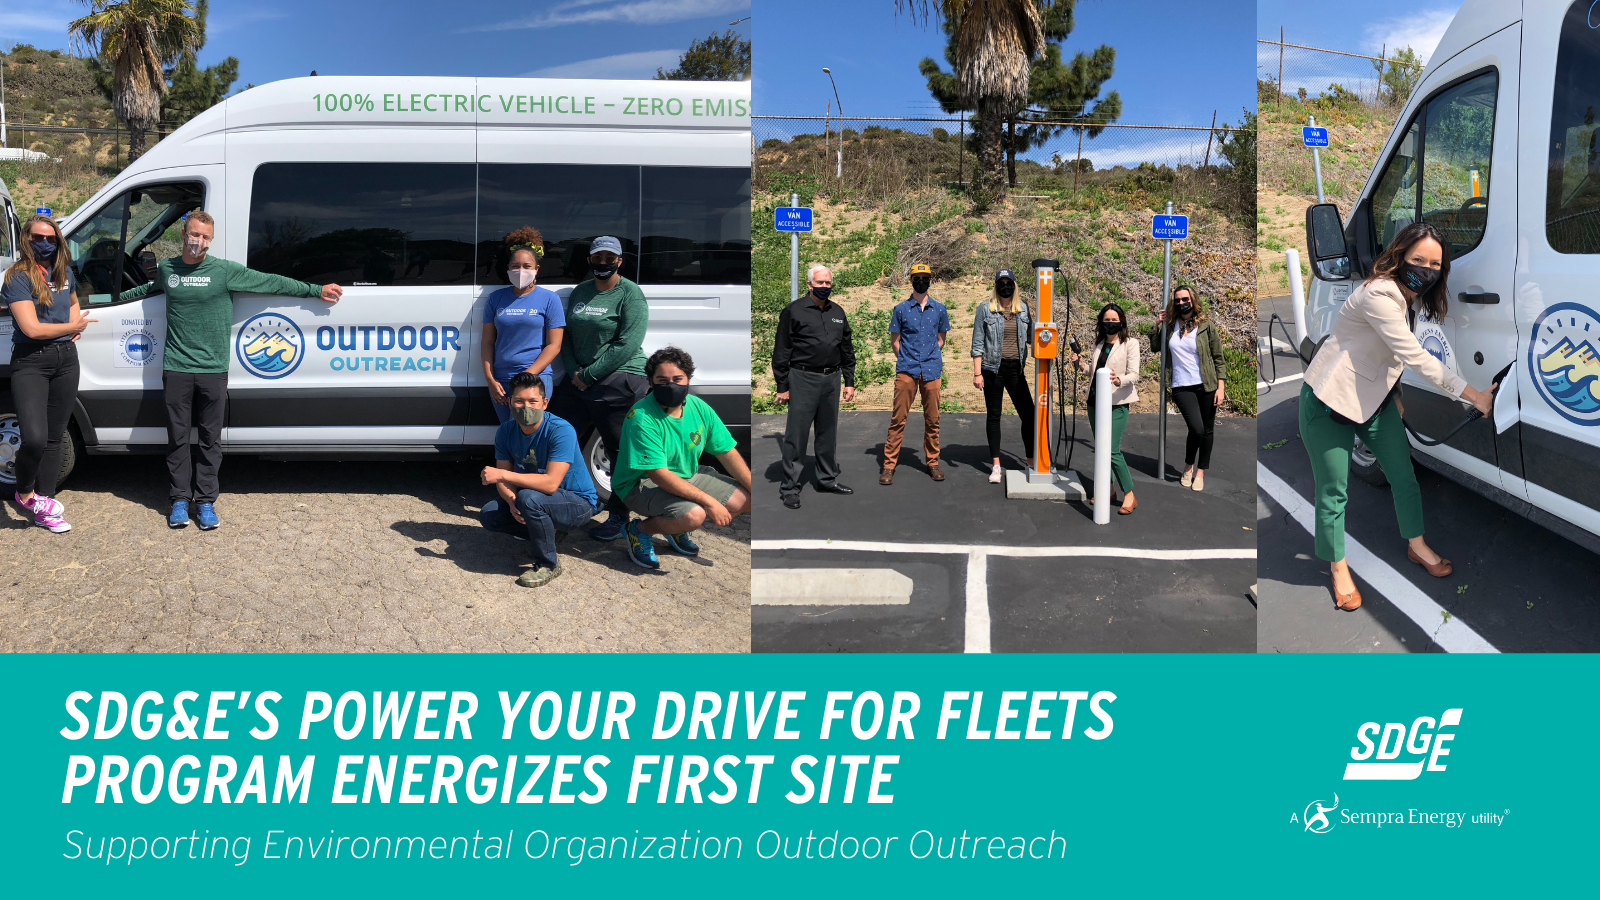 SDG&E's Power Your Drive for Fleets Program Energizes First Site, Supports Environmental Organization Outdoor Outreach